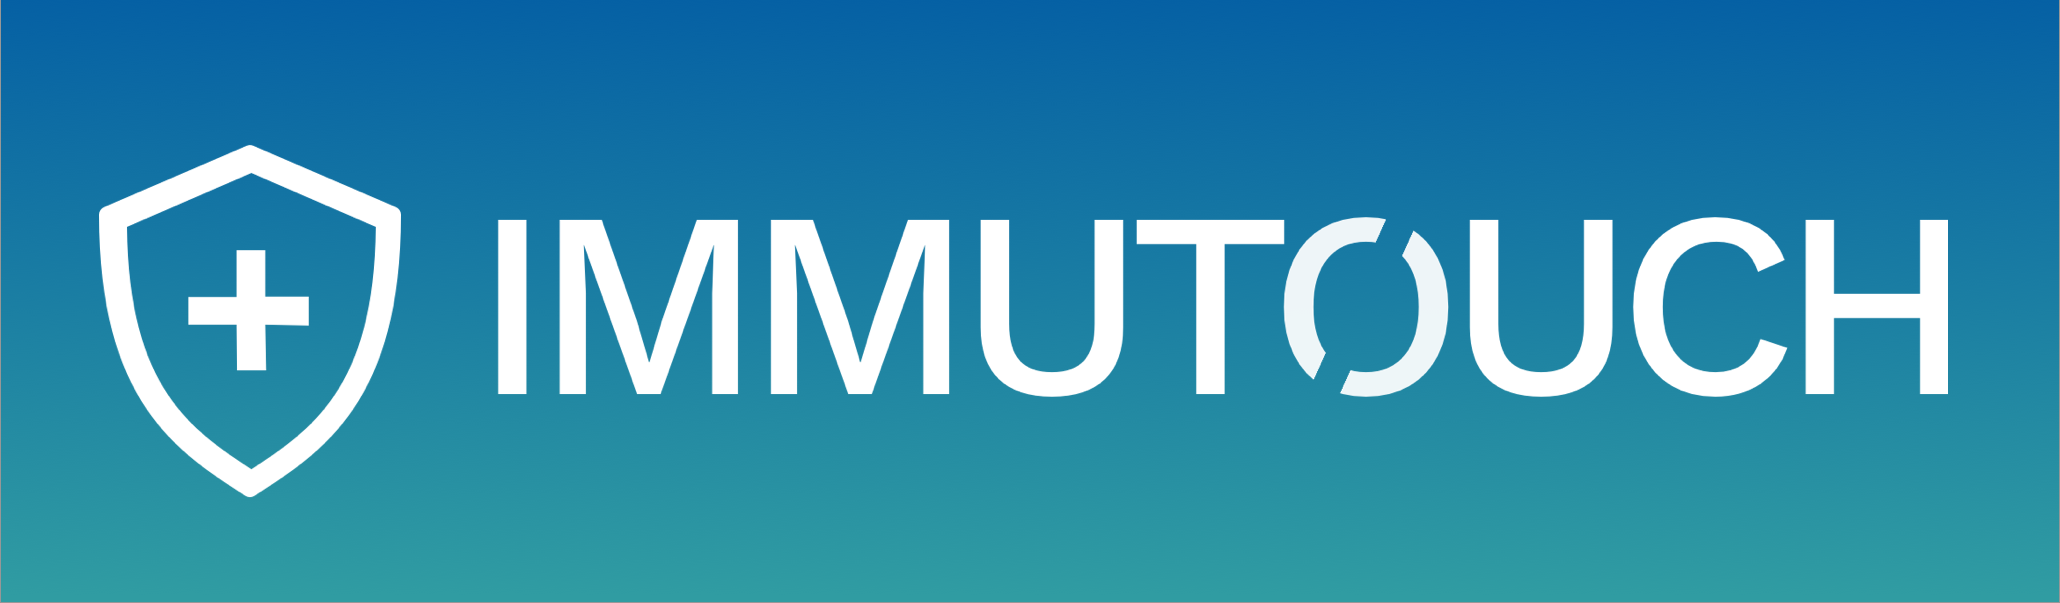 Image result for immutouch app logo